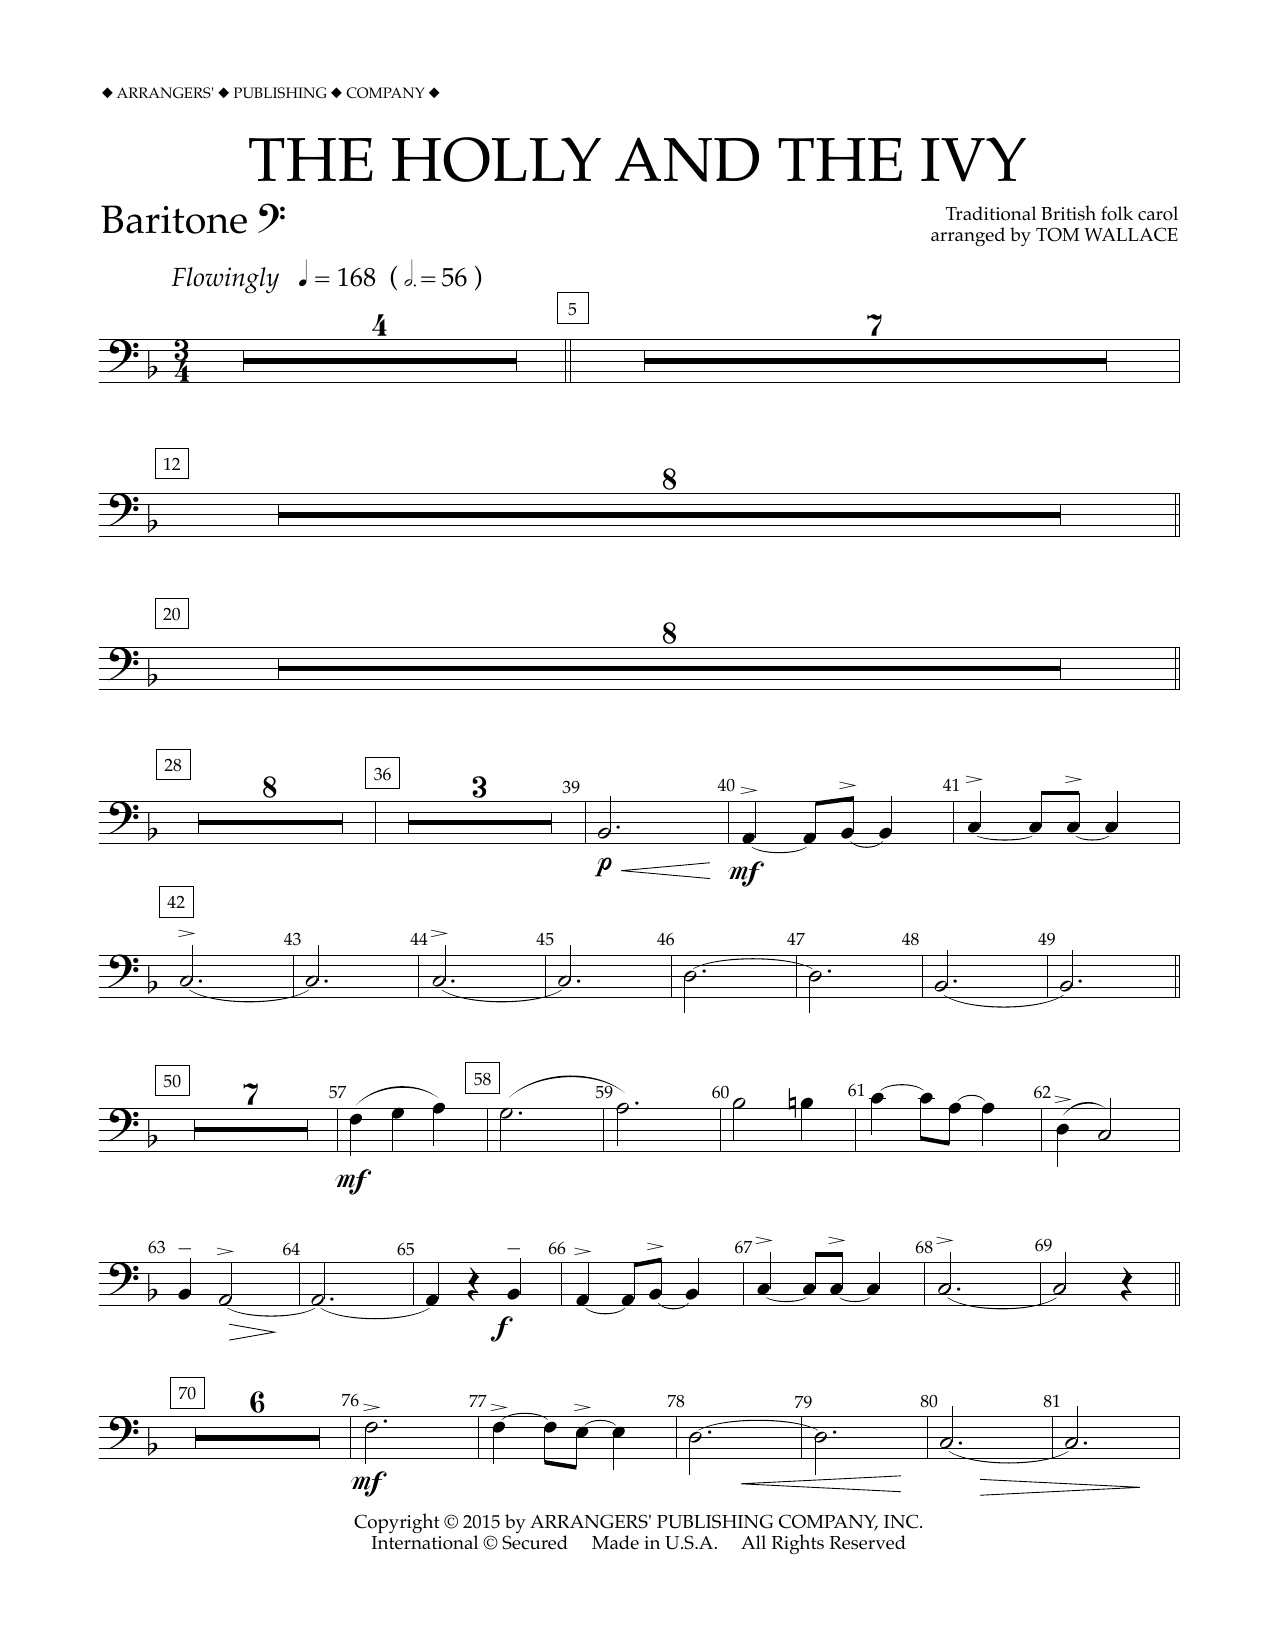 Tom Wallace The Holly and the Ivy - Baritone B.C. sheet music notes and chords. Download Printable PDF.